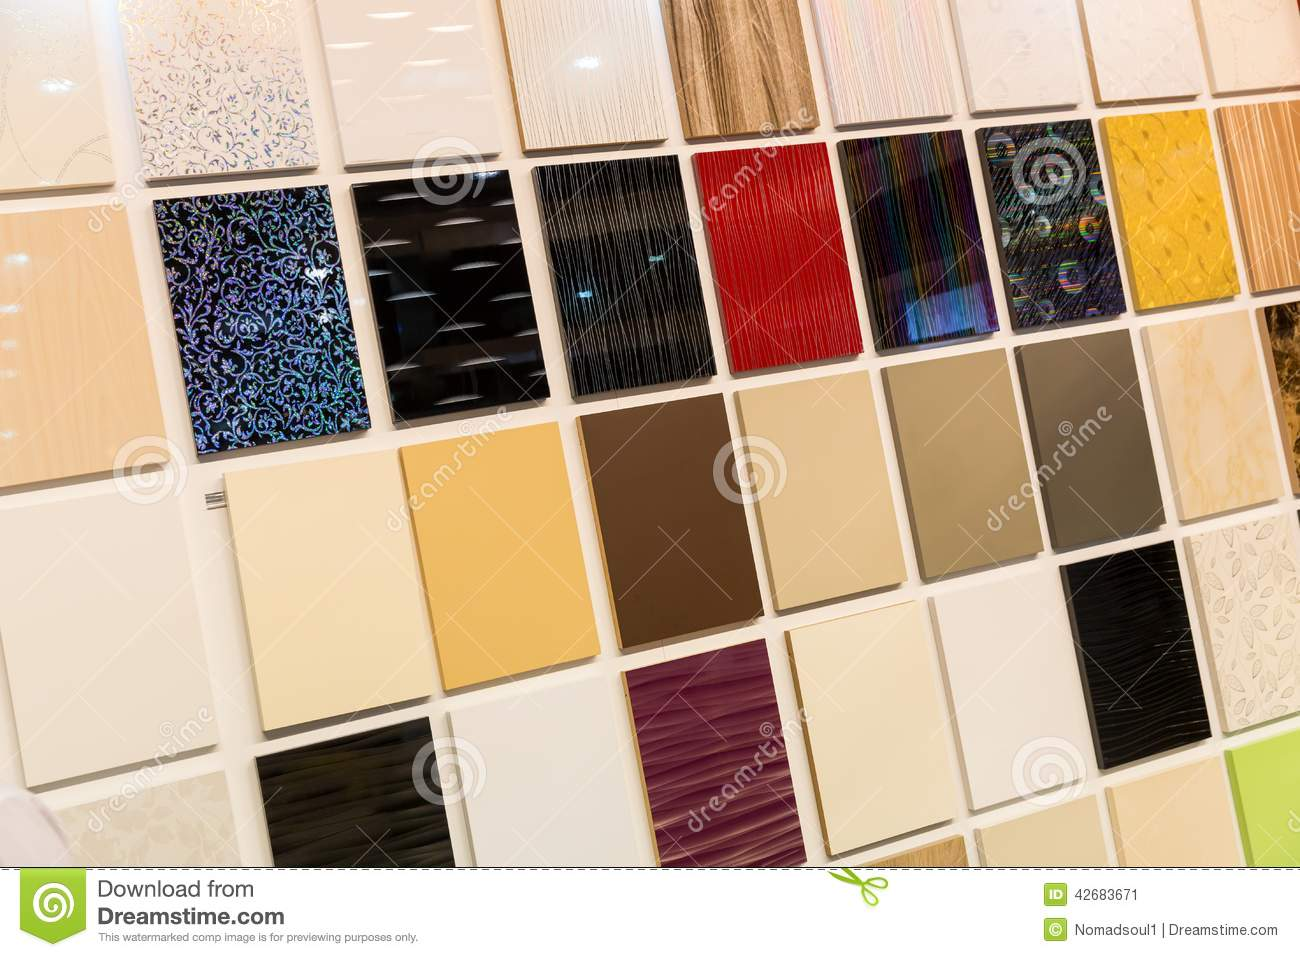 Samples Of A Ceramic Tile In Shop Stock Image Image Of Many